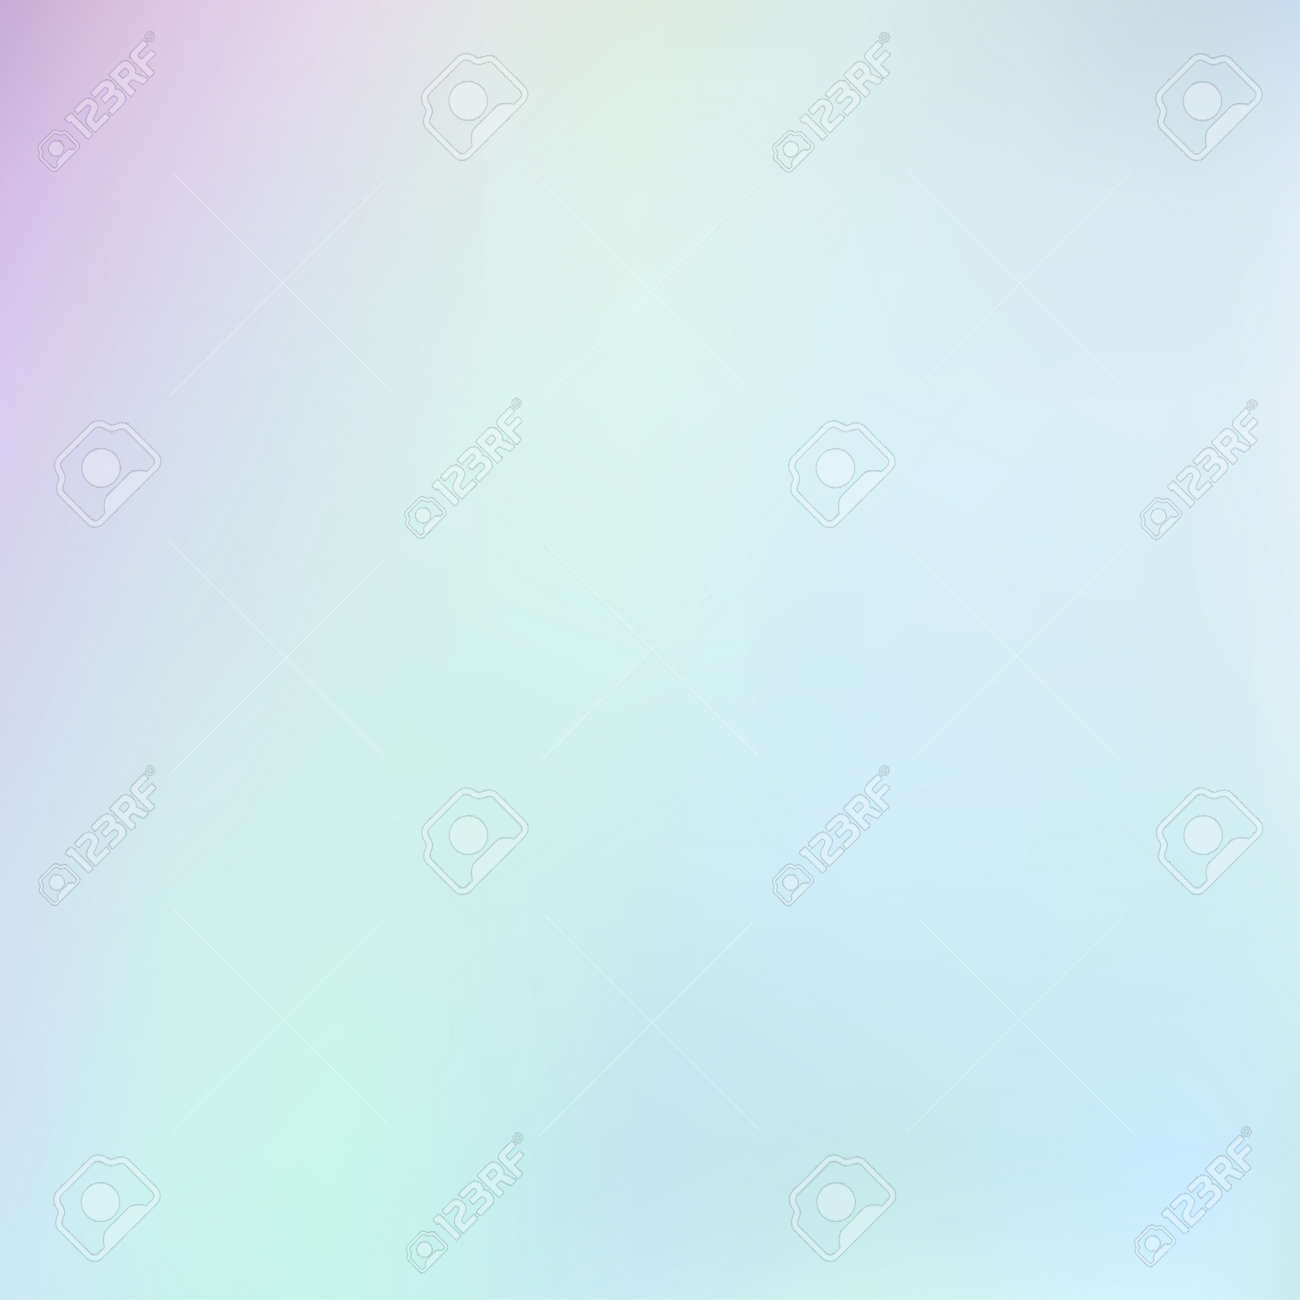 Texture abstractions idea. Minimal easy and sharply. Simple nice background. Mesh graphic blend. Light blue colorful new texture. - 122251185